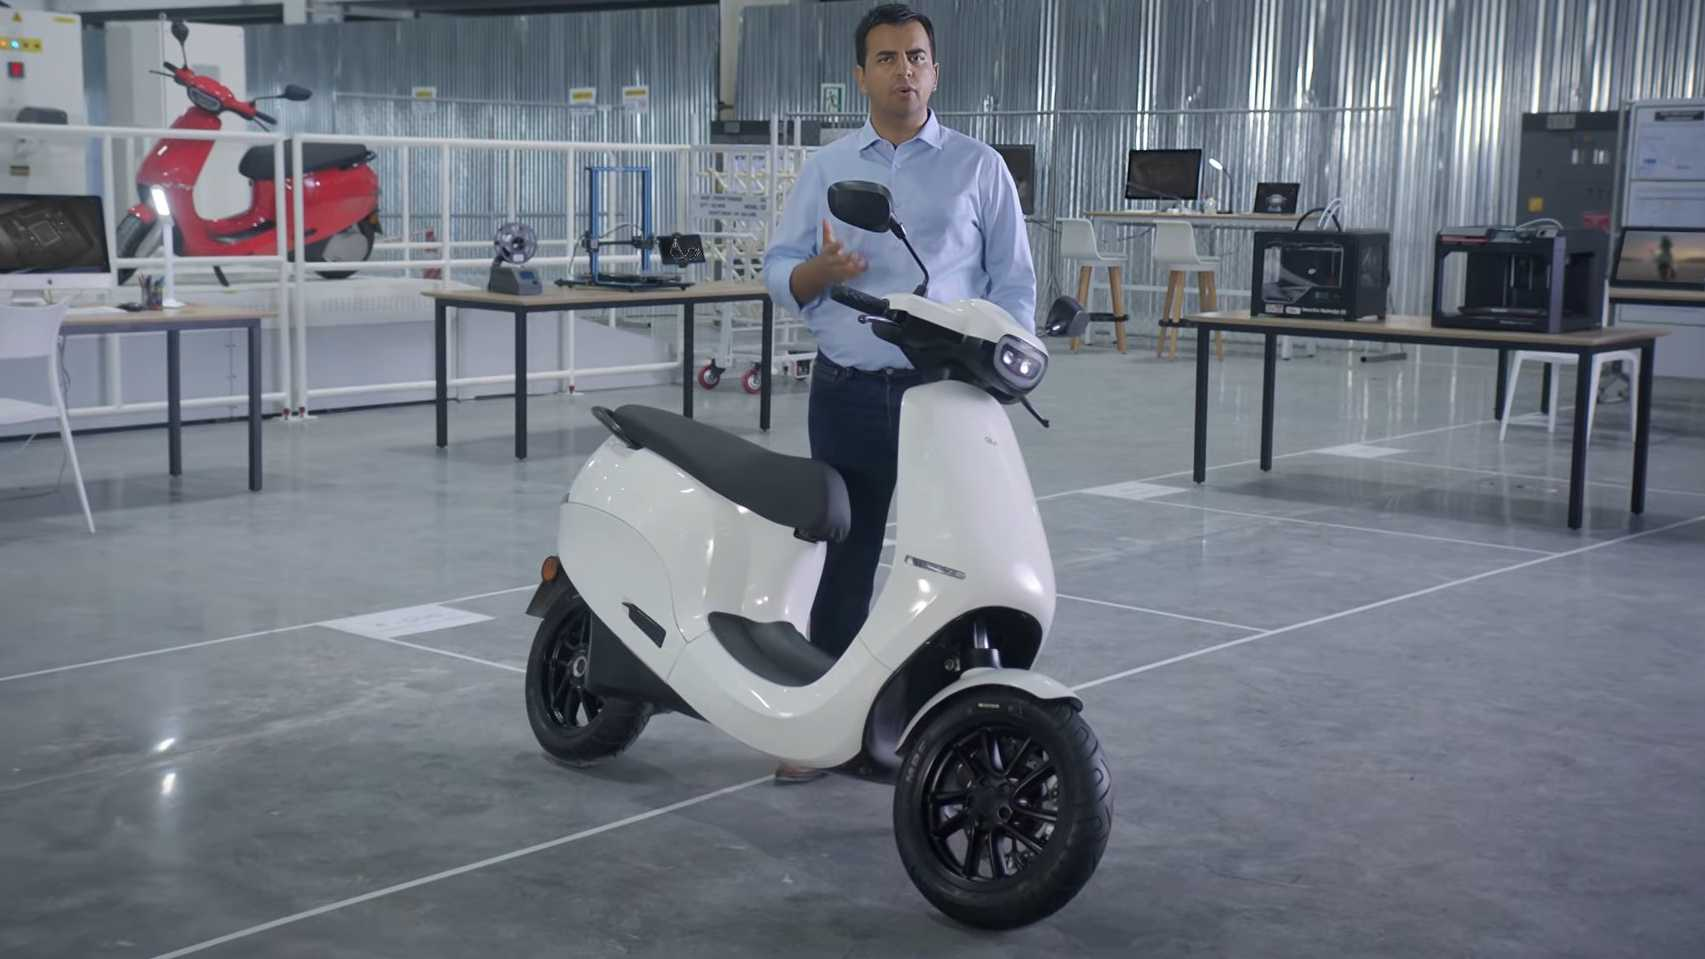 Ola Electric chief Bhavish Aggarwal has hinted at an imminent price rise for the Ola e-scooters. Image: Ola Electric